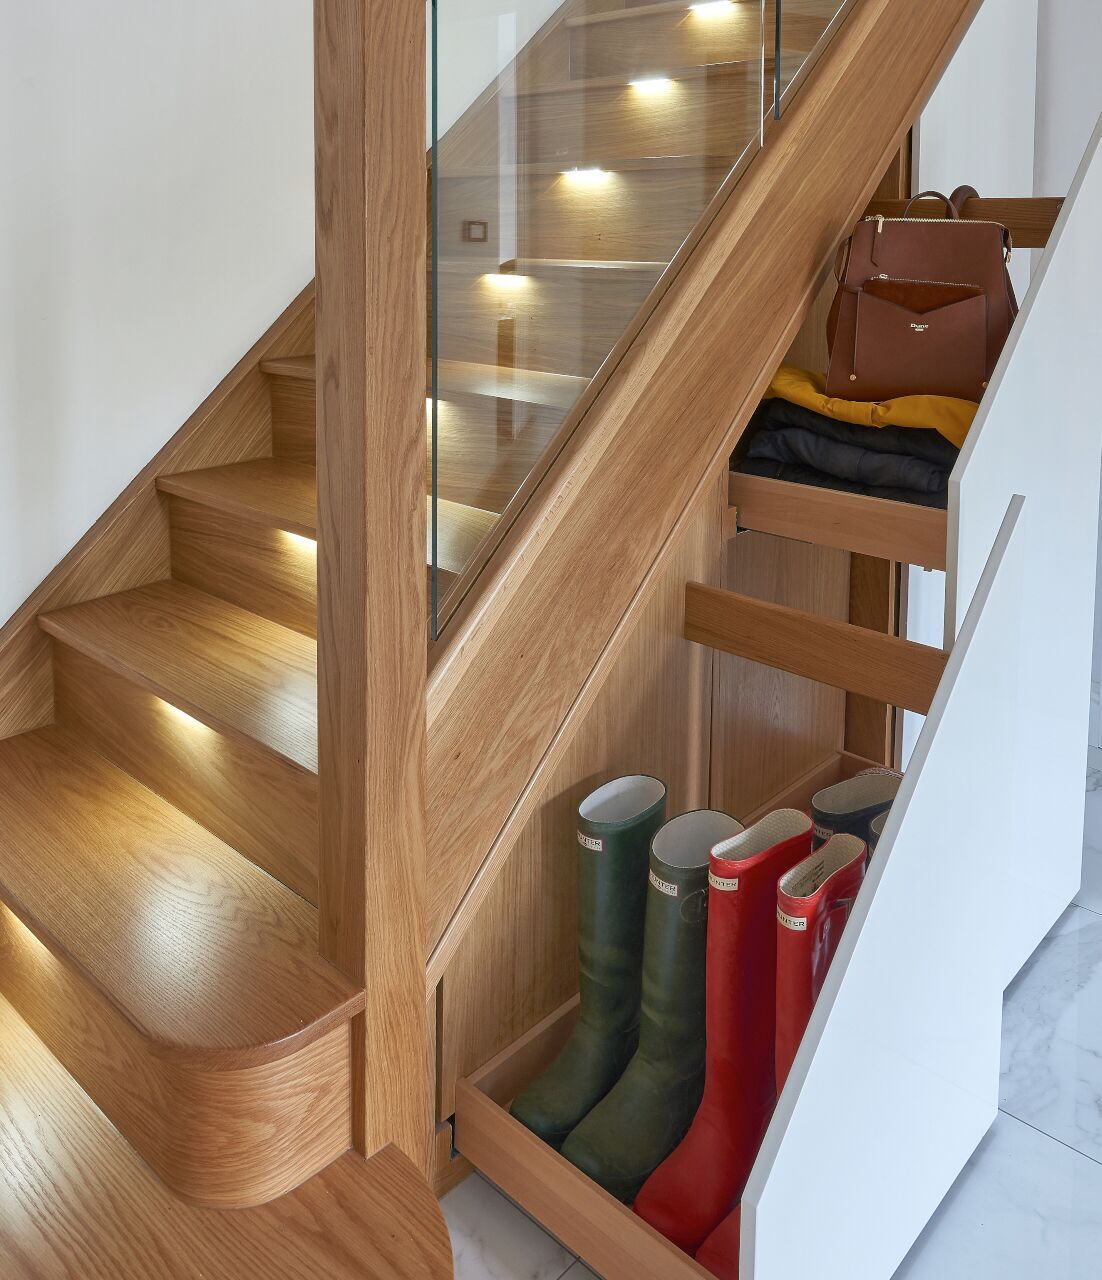 22 Modern Innovative Staircase Ideas: Contemporary & Modern (With Images